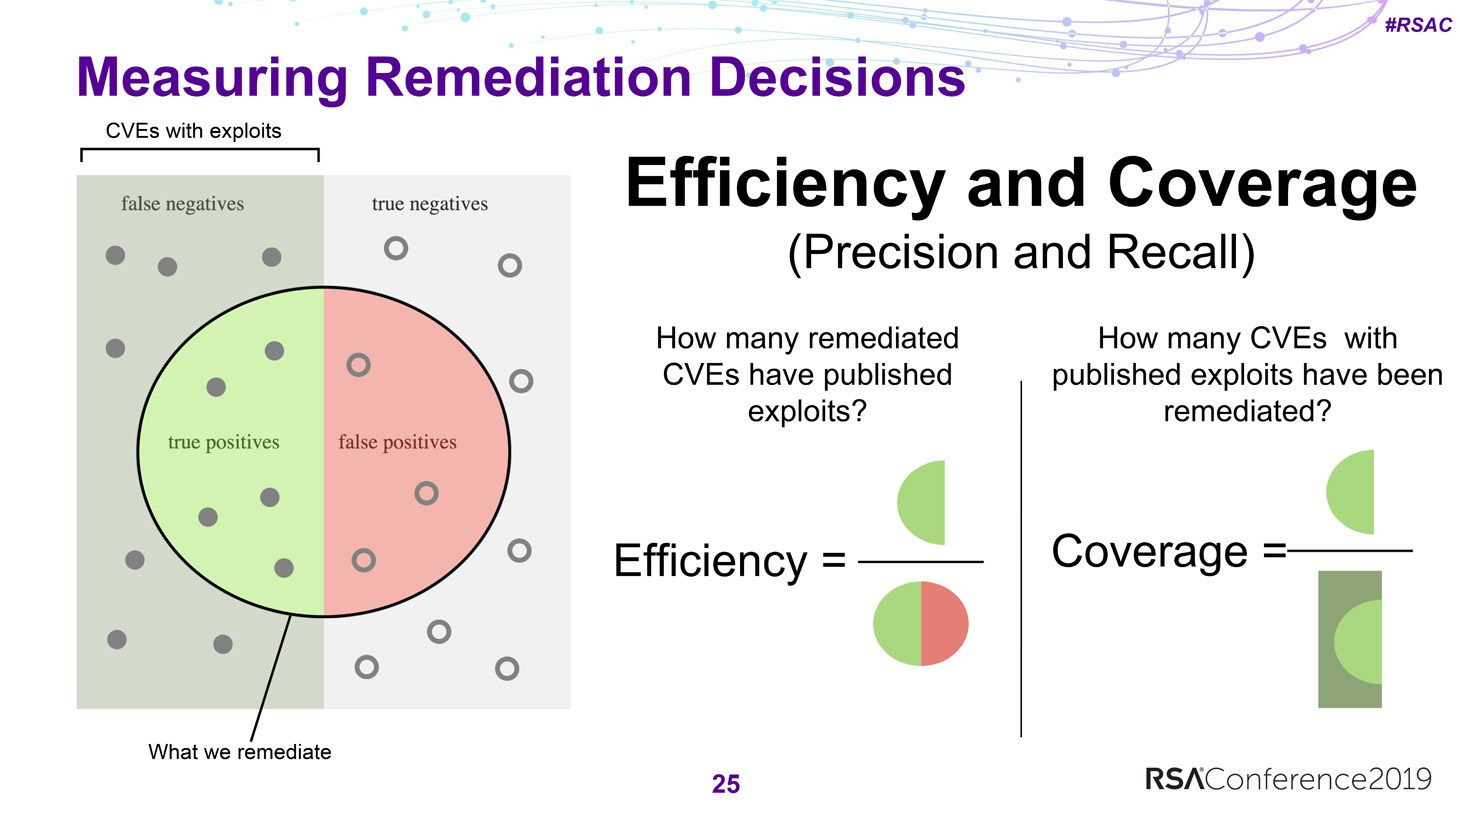 The researchers measured the relevance of the patching strategies against two metrics: efficiency and coverage